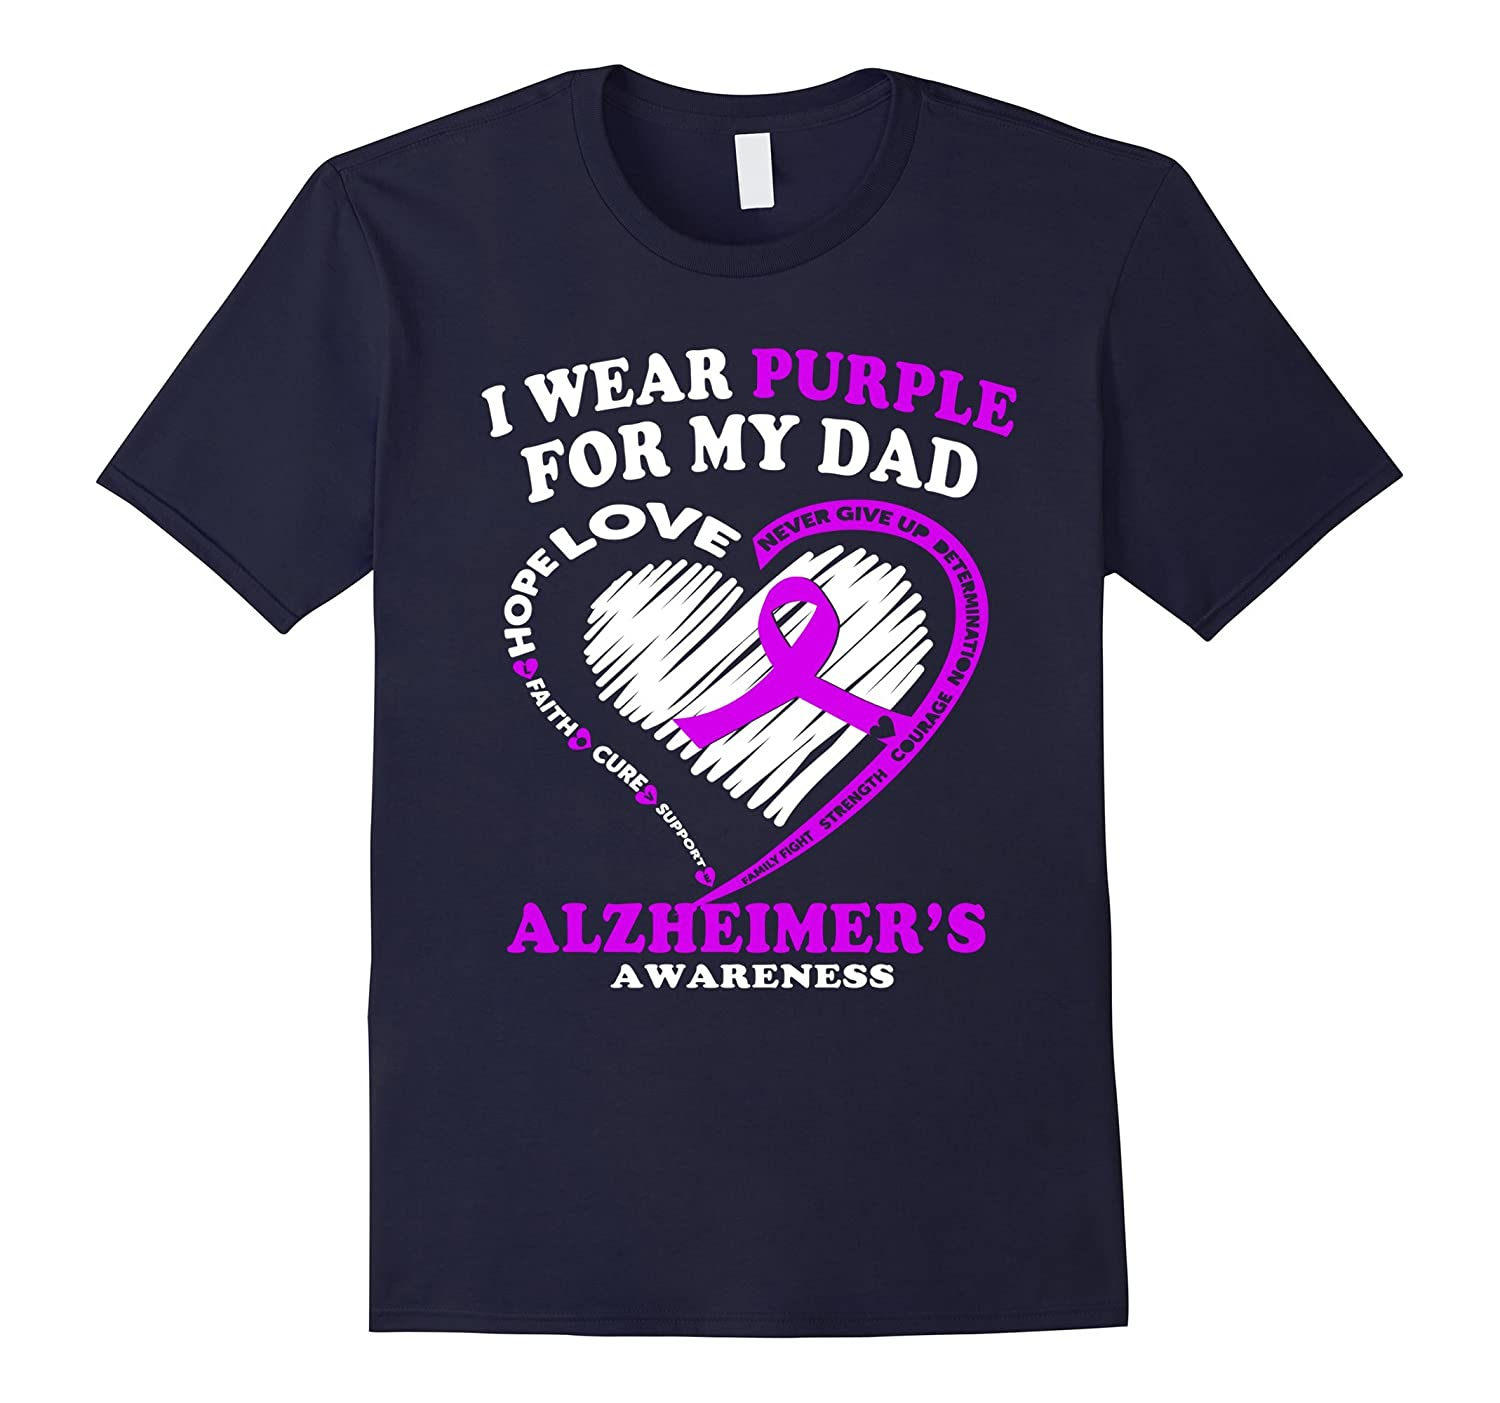 Alzheimers Awareness Shirt - I Wear Purple For My Dad-TH